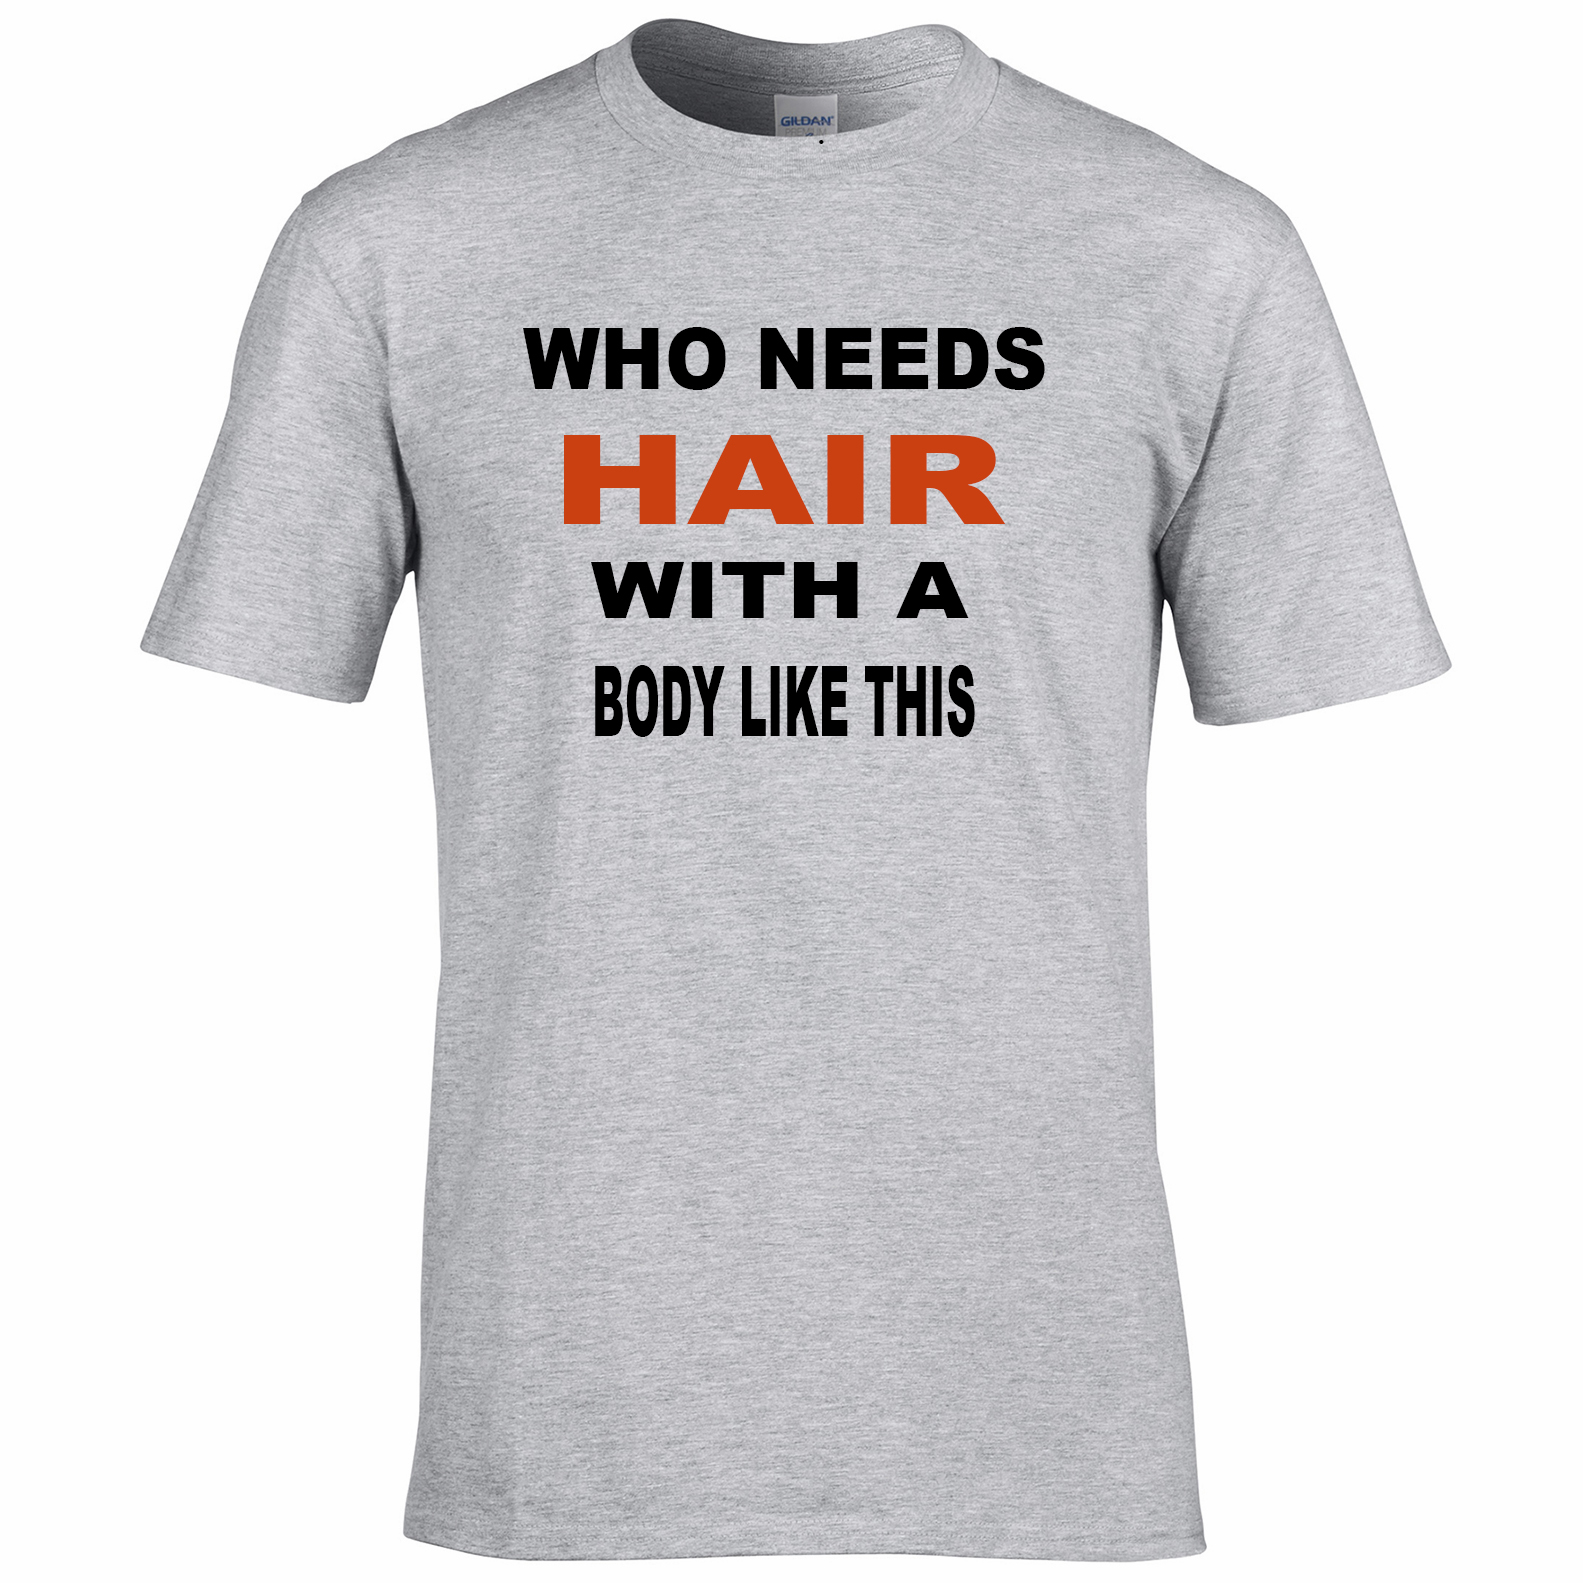 Cheap Funny T Shirts Online | Is Shirt